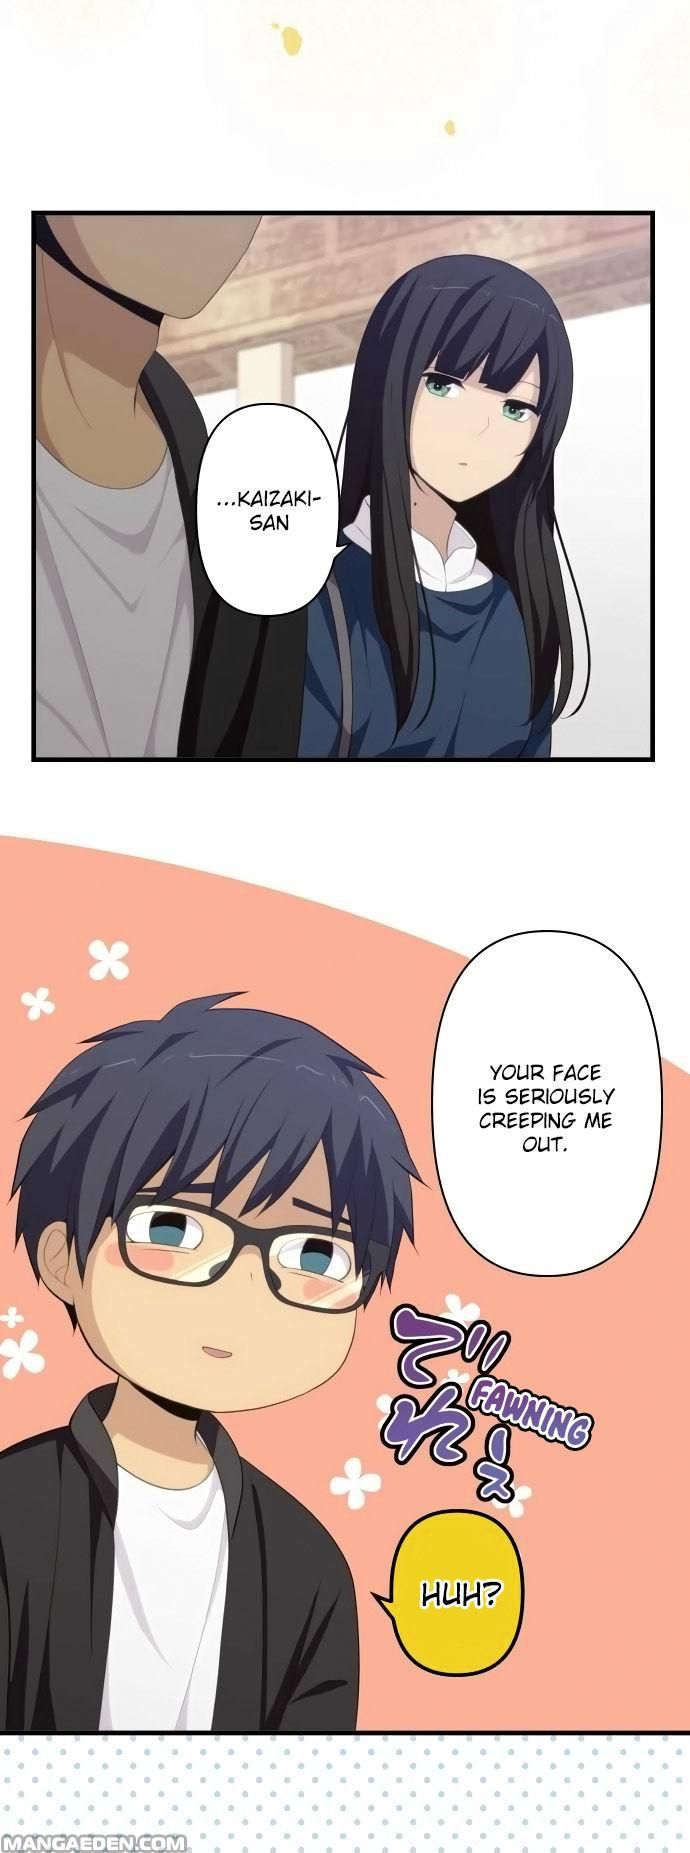 Crunchyroll forum funny anime pictures page 148 - Manga Relife Chapter 174 Page 15